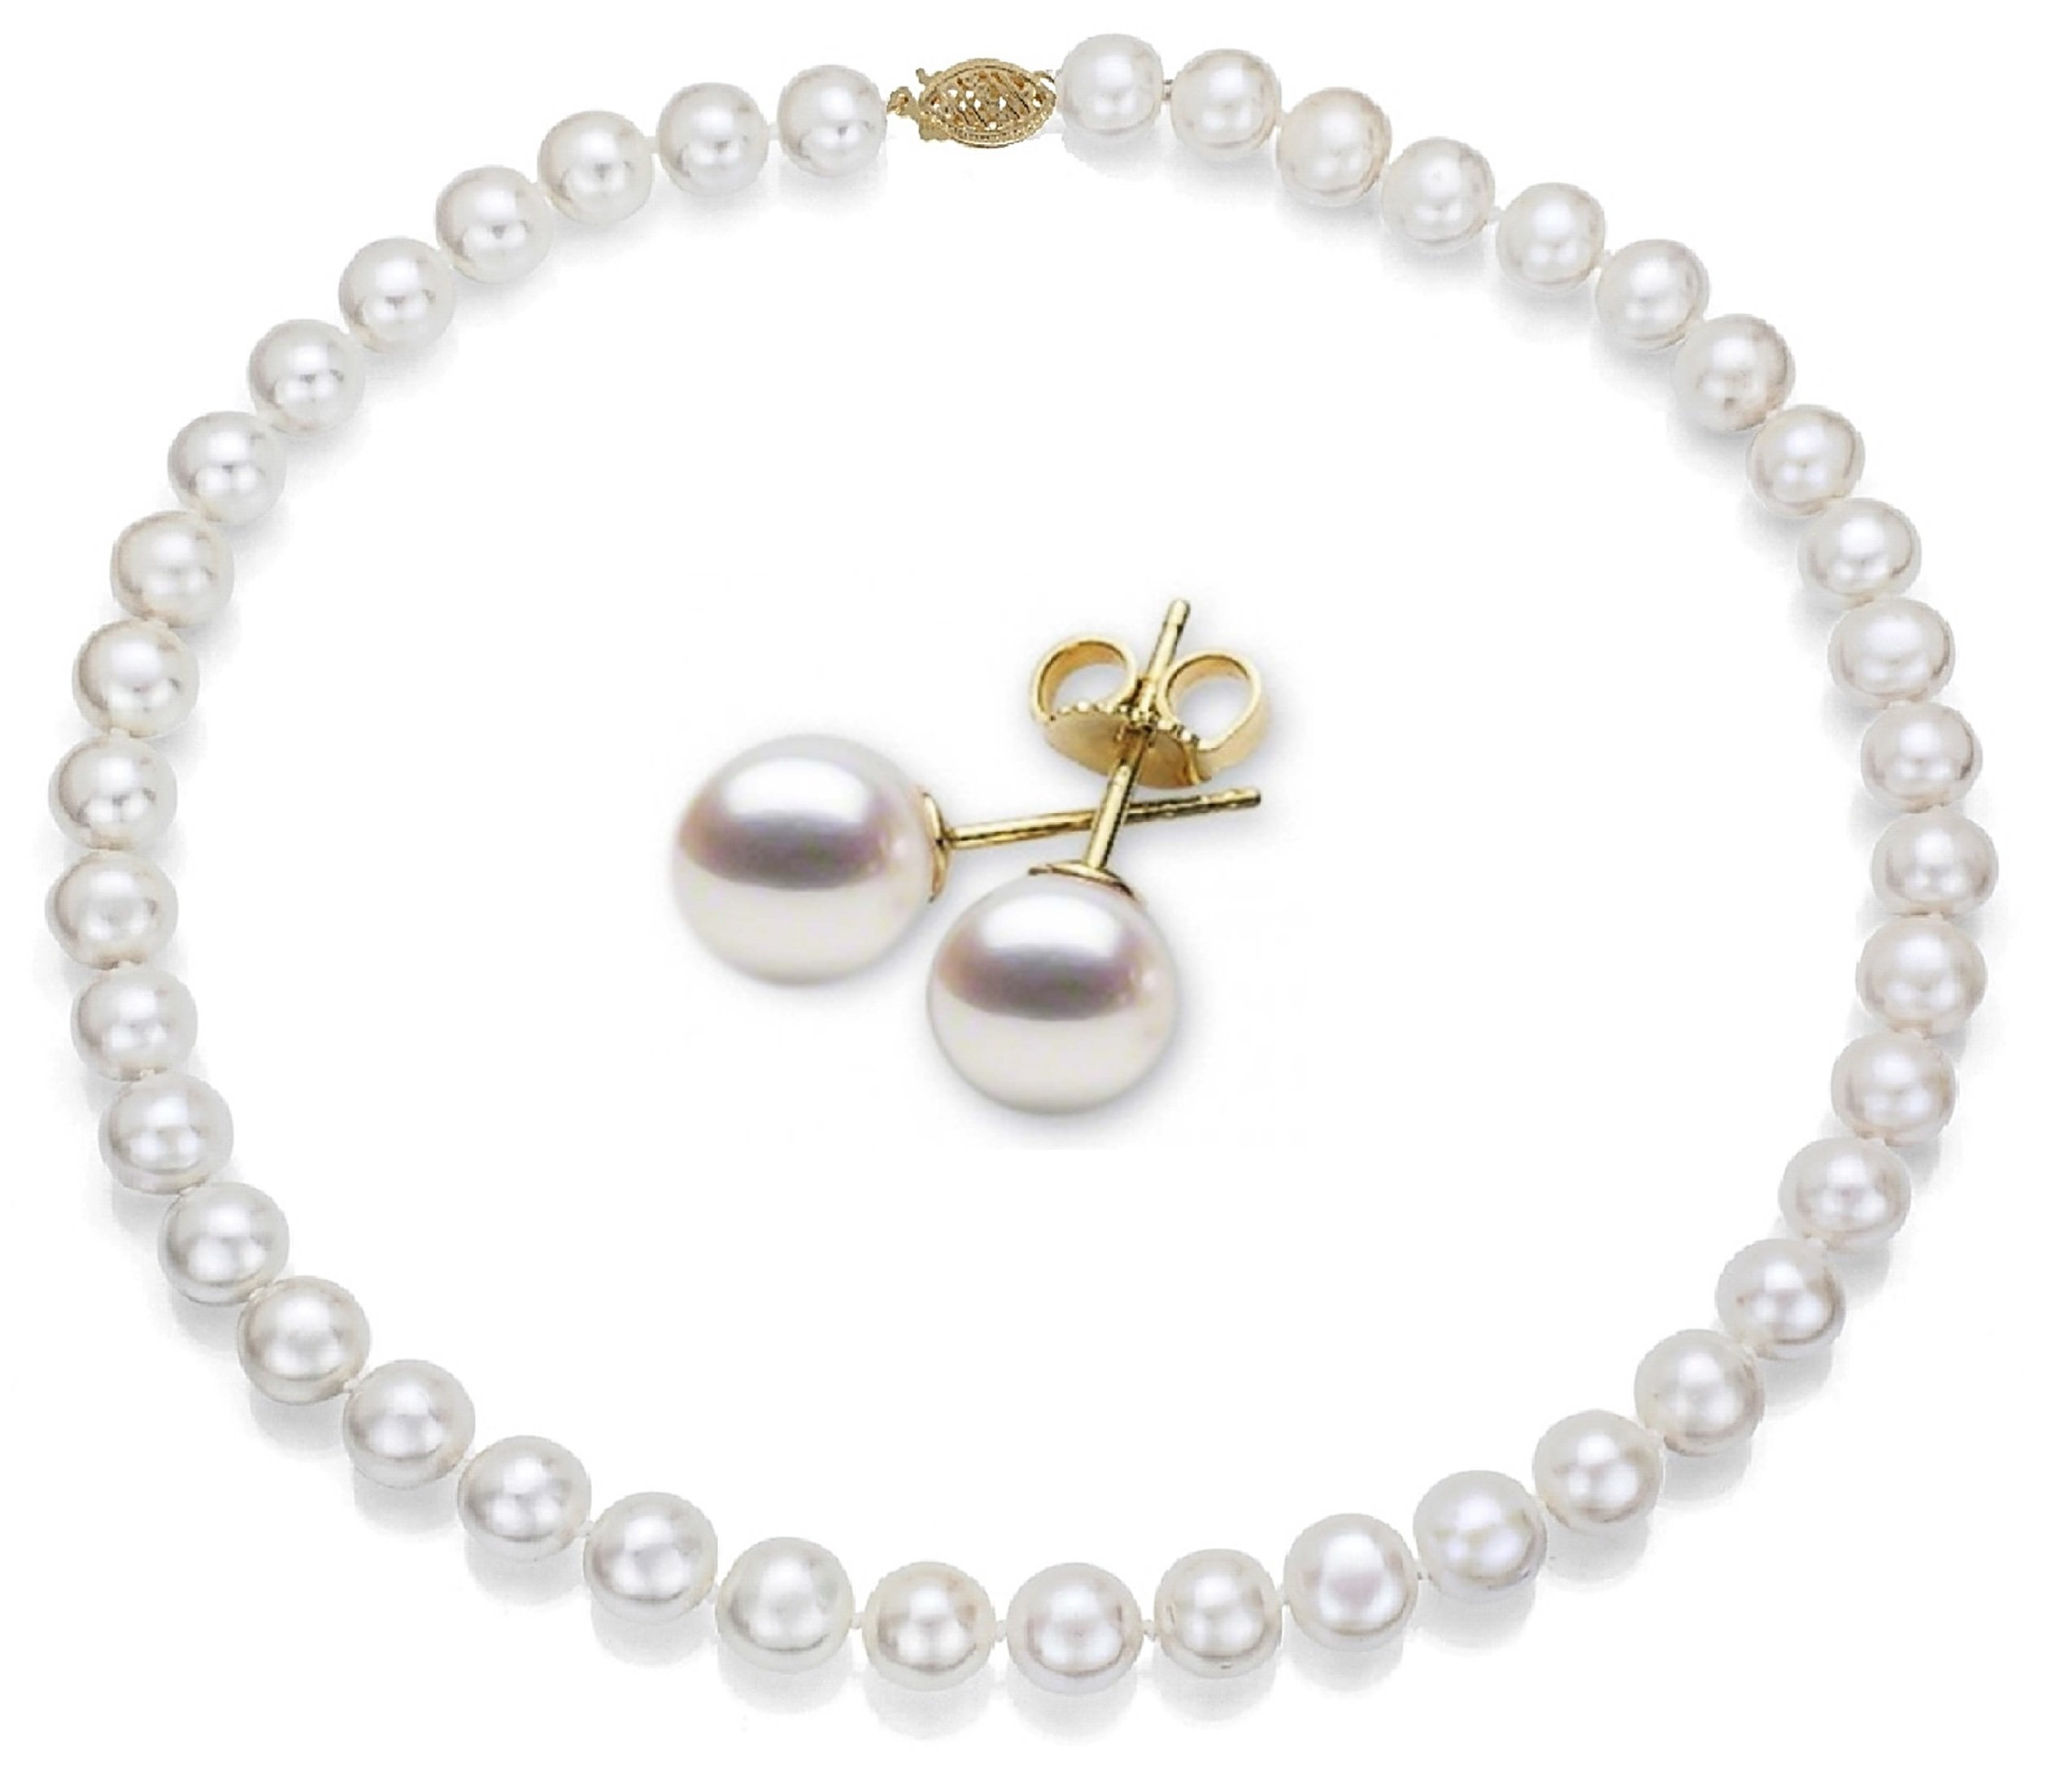 14k Gold 9-10mm White Freshwater Cultured AA-Quality Pearl Necklace, Earrings Set